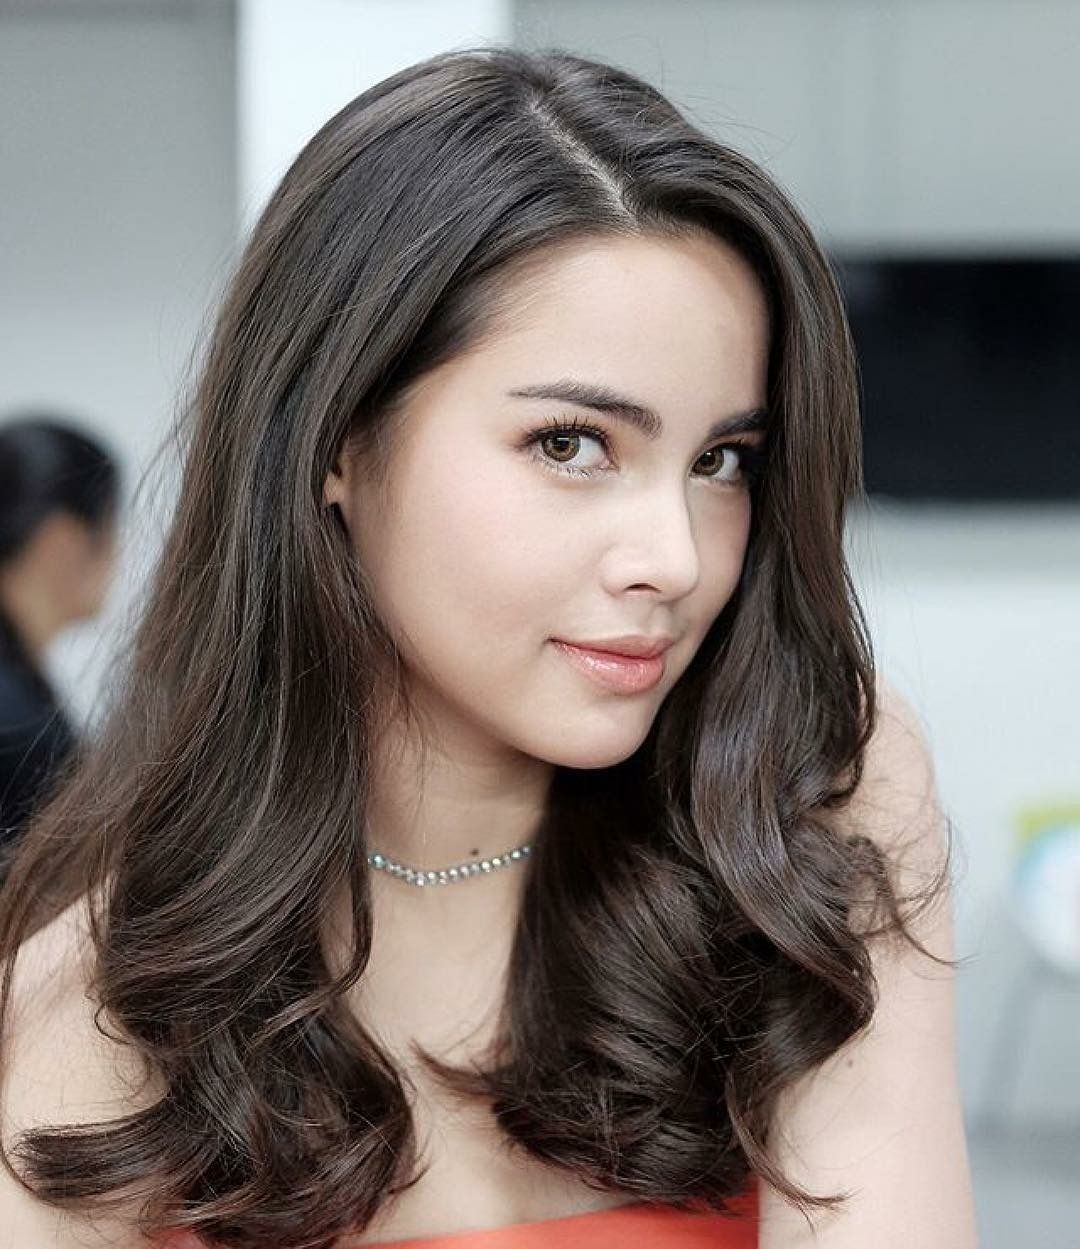 Urassaya Sperbund nude (59 photo), Tits, Sideboobs, Instagram, lingerie 2019